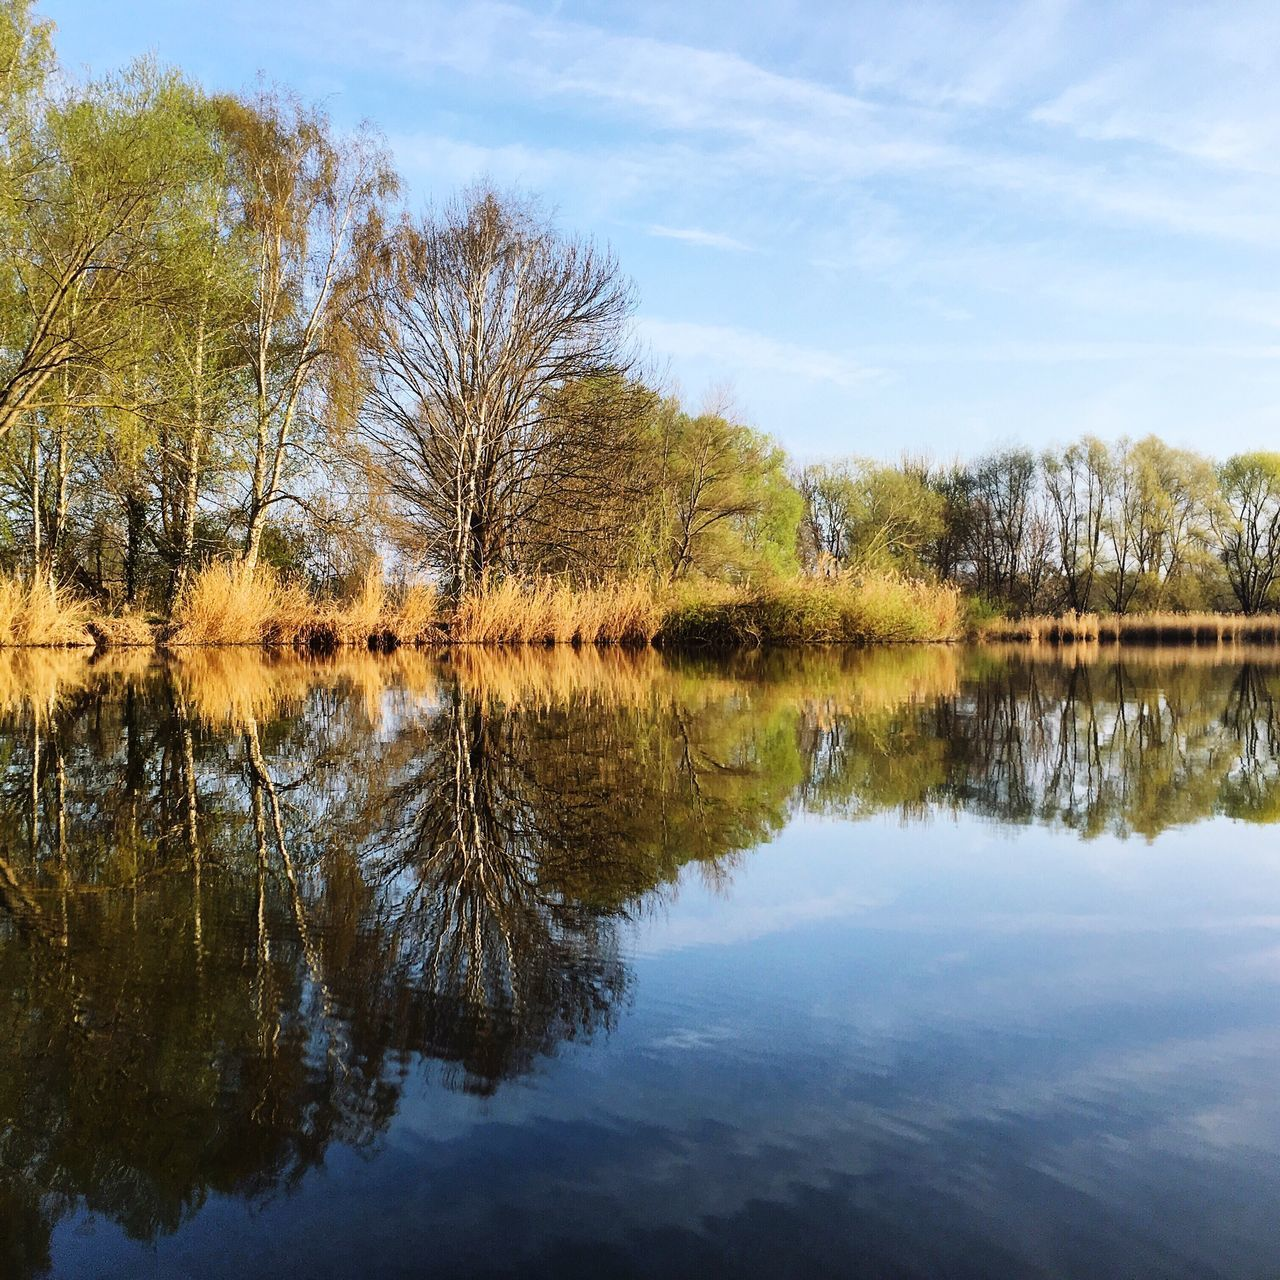 reflection, water, lake, tranquil scene, sky, tranquility, scenics, nature, tree, beauty in nature, outdoors, waterfront, cloud - sky, standing water, day, no people, symmetry